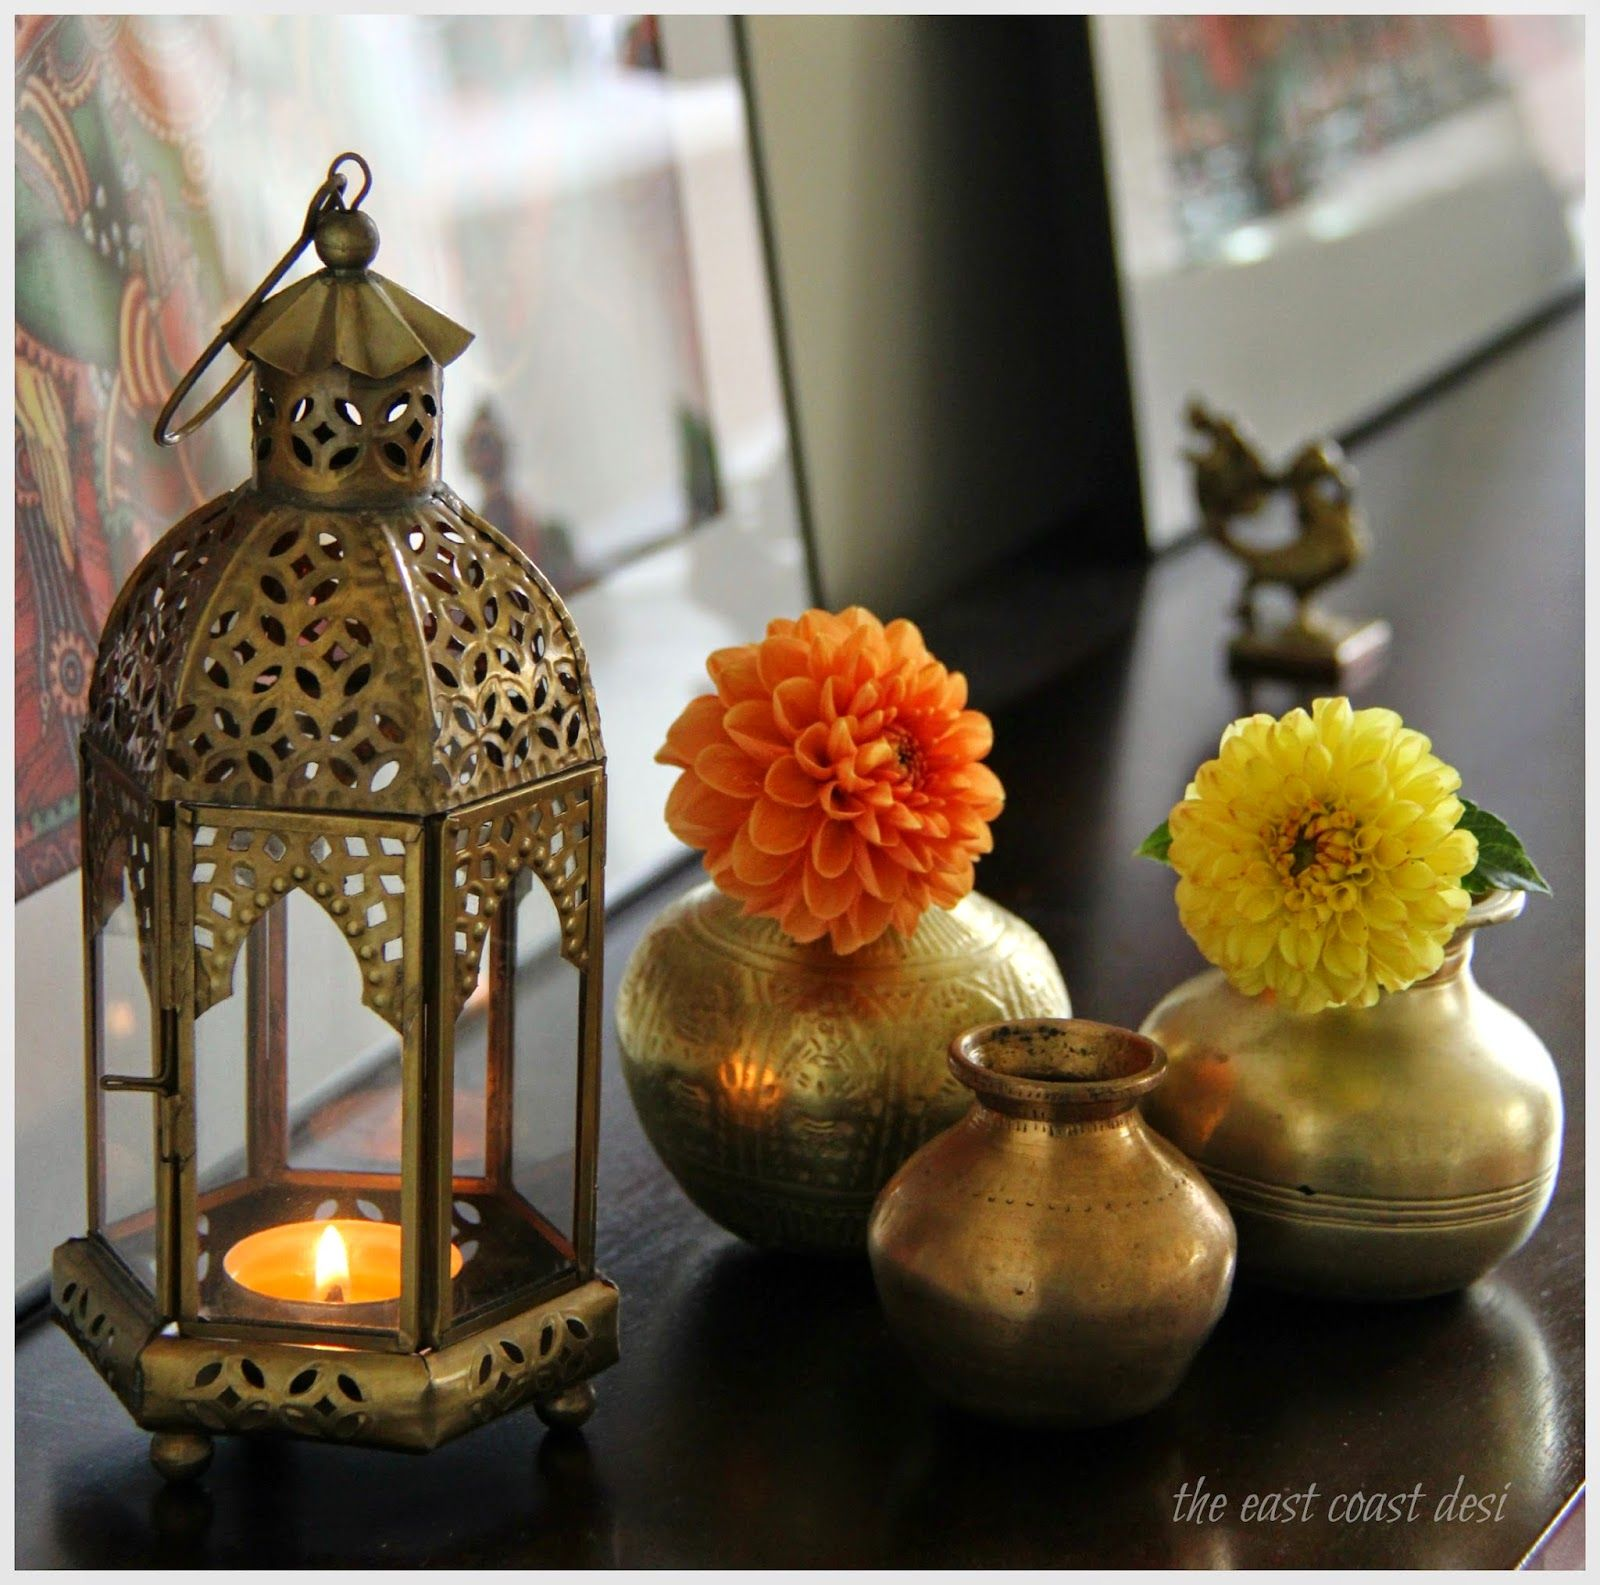 Antique brass kundas with single stems of dahlias tucked into them decor styling inspirations Home decorations for diwali